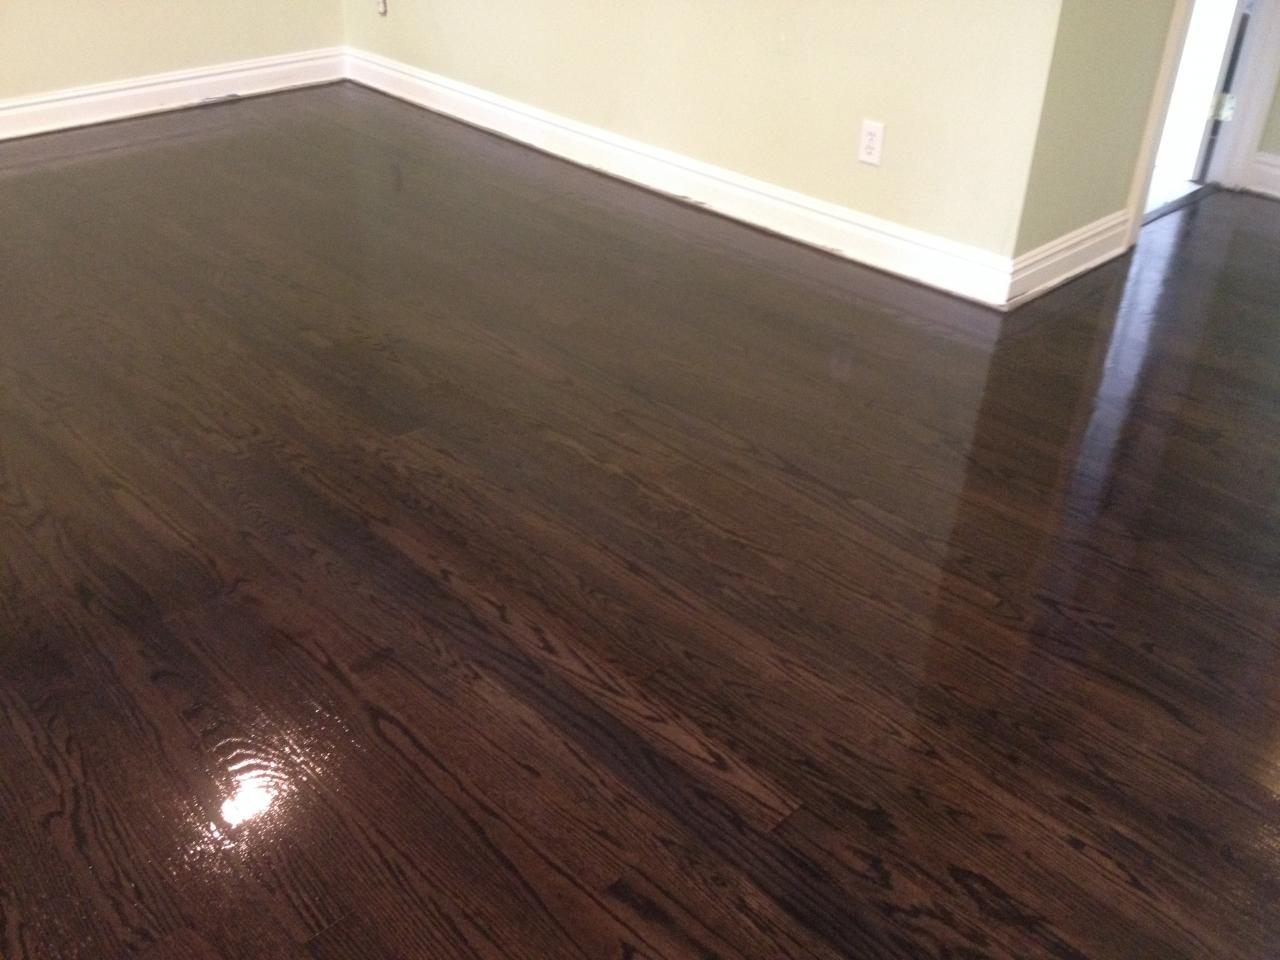 Long island wood flooring callahan brothers floors inc for Hardwood flooring inc